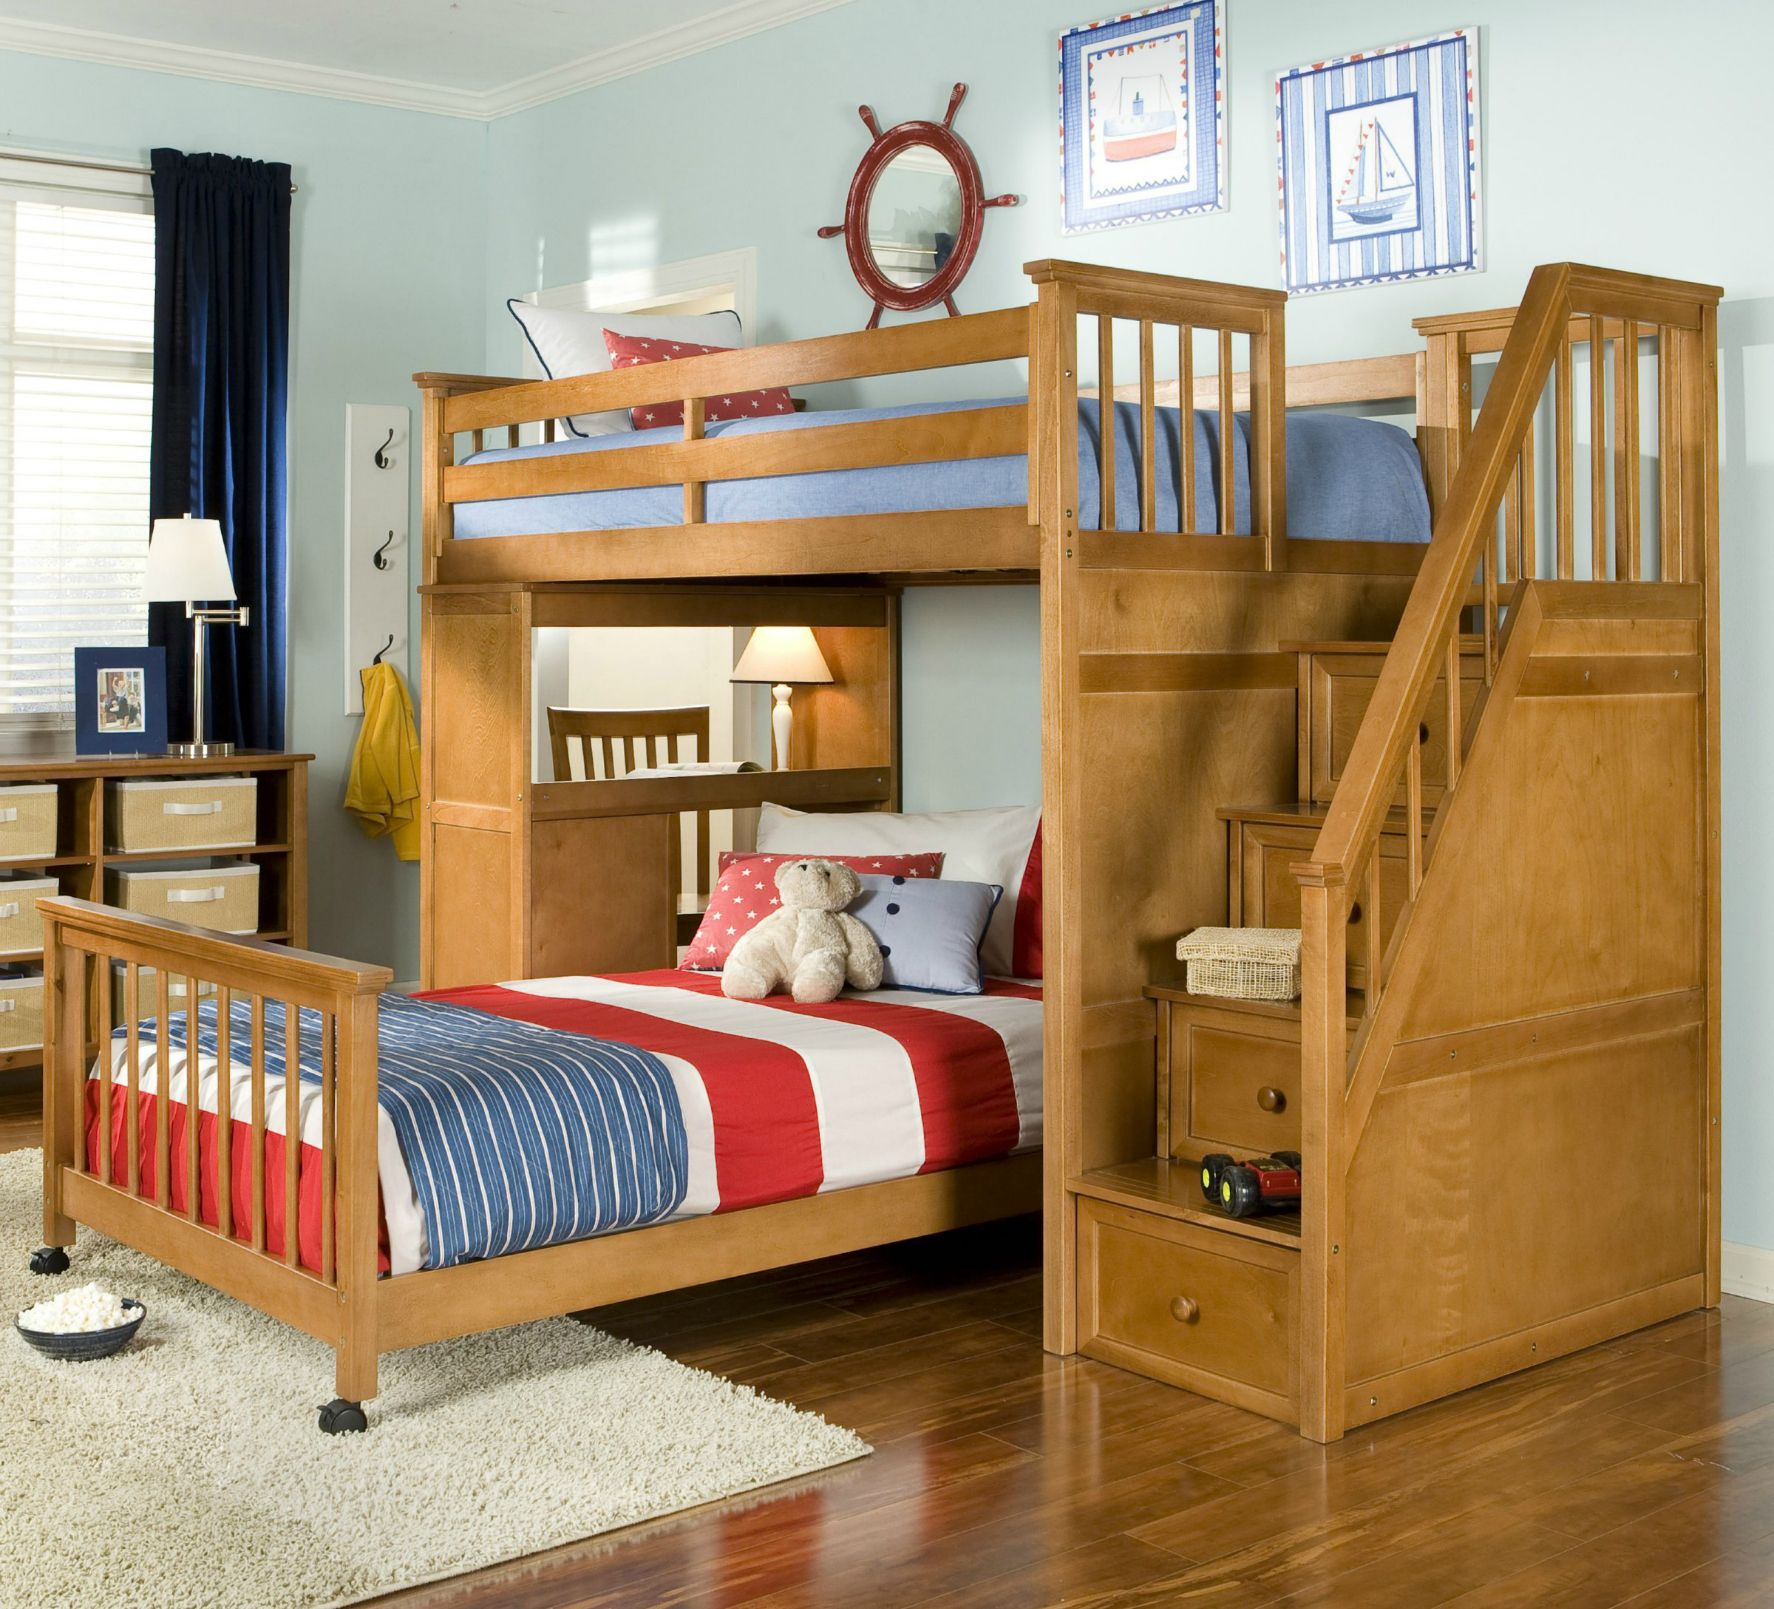 21 top wooden l-shaped bunk beds (with space-saving features